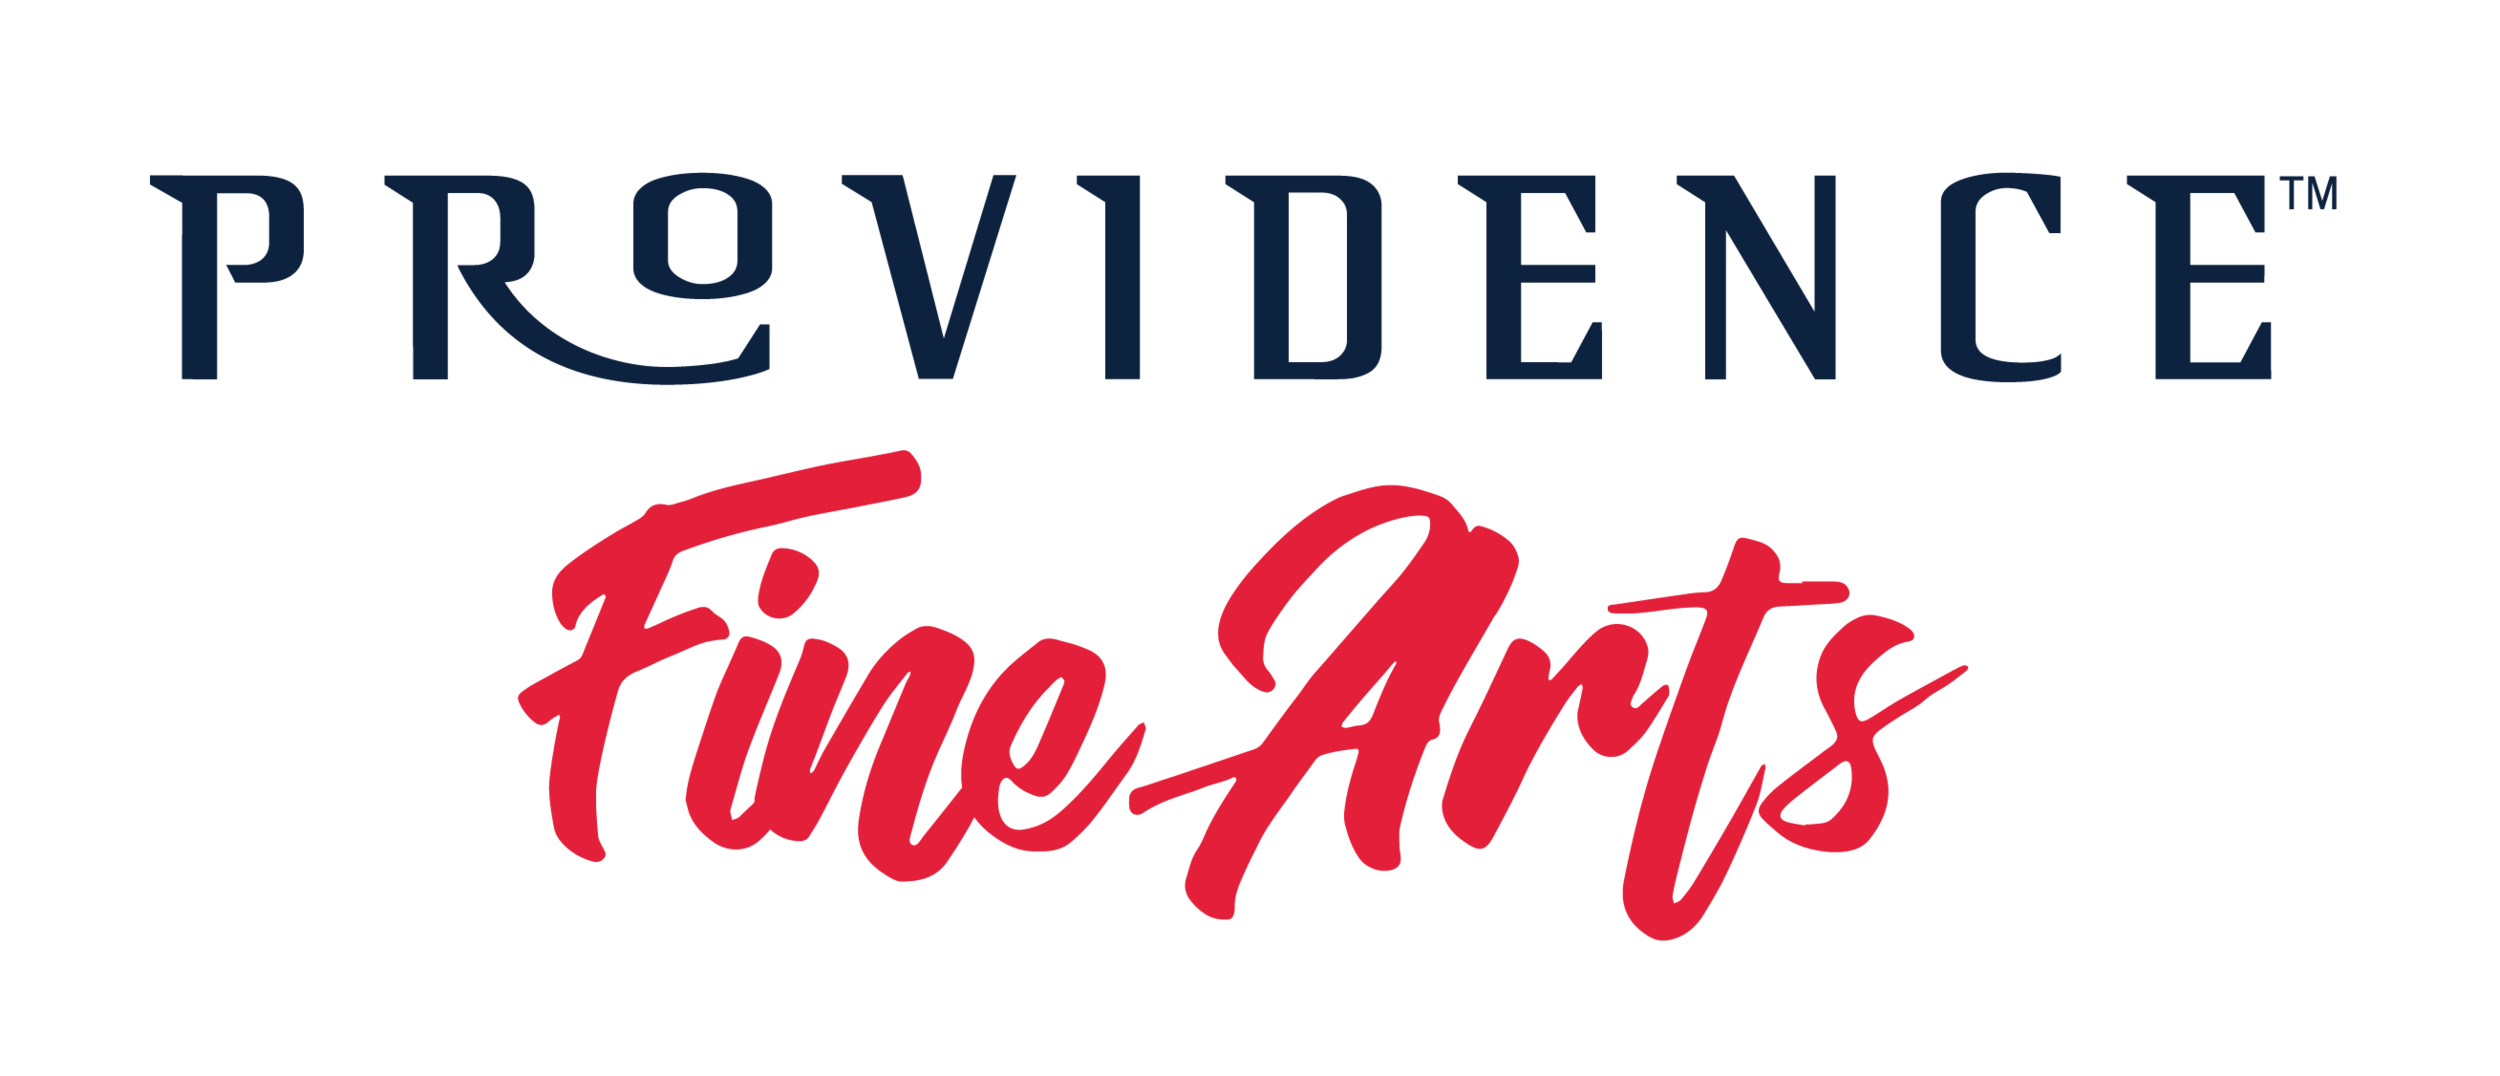 ProvidenceFineArtsLogo.Final-04 copy.png